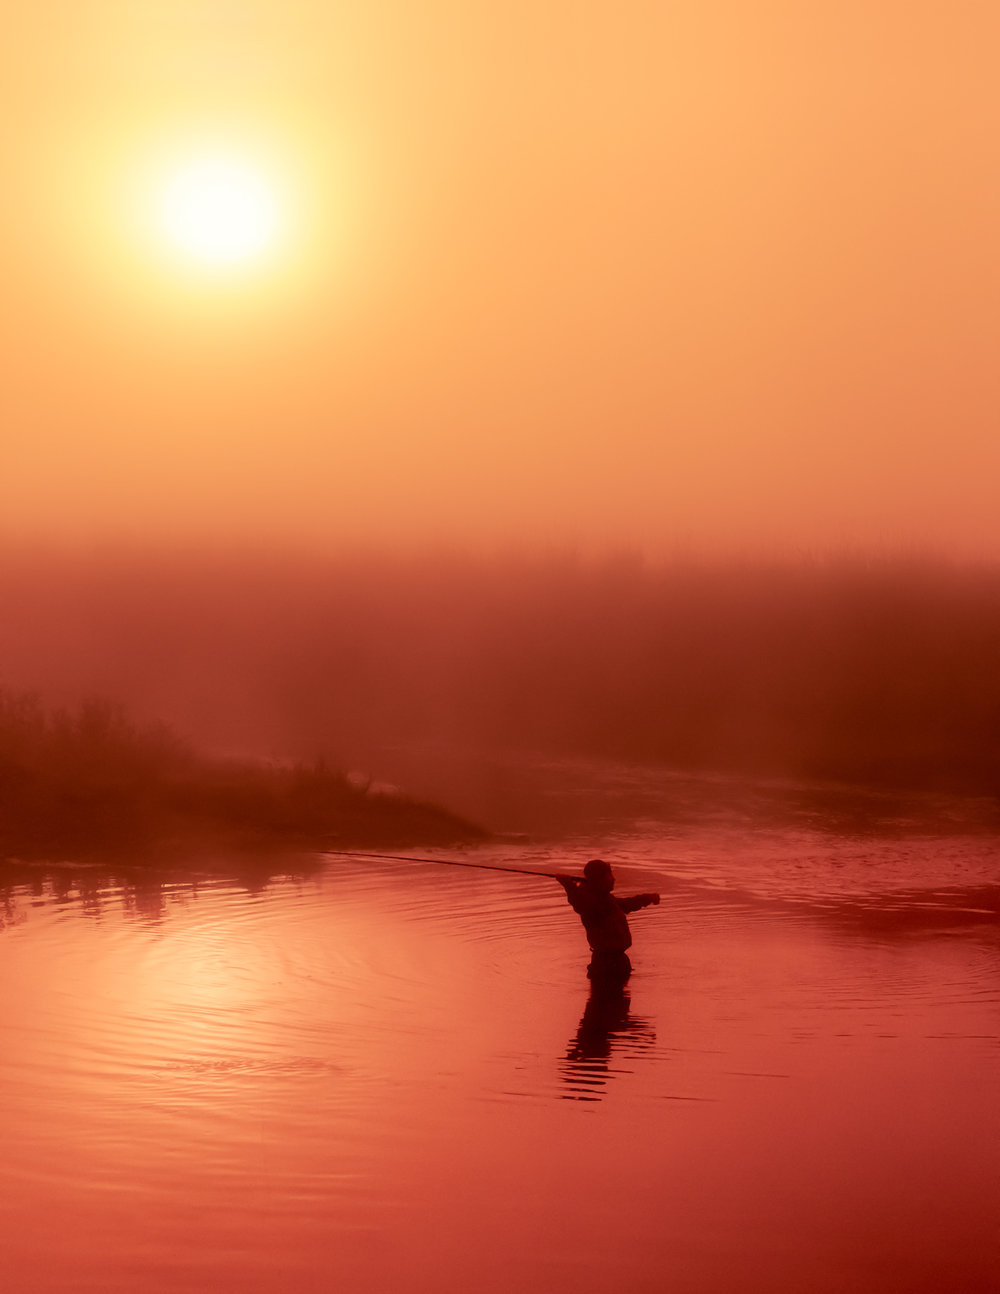 Vertical Fly Fishing Silhouette